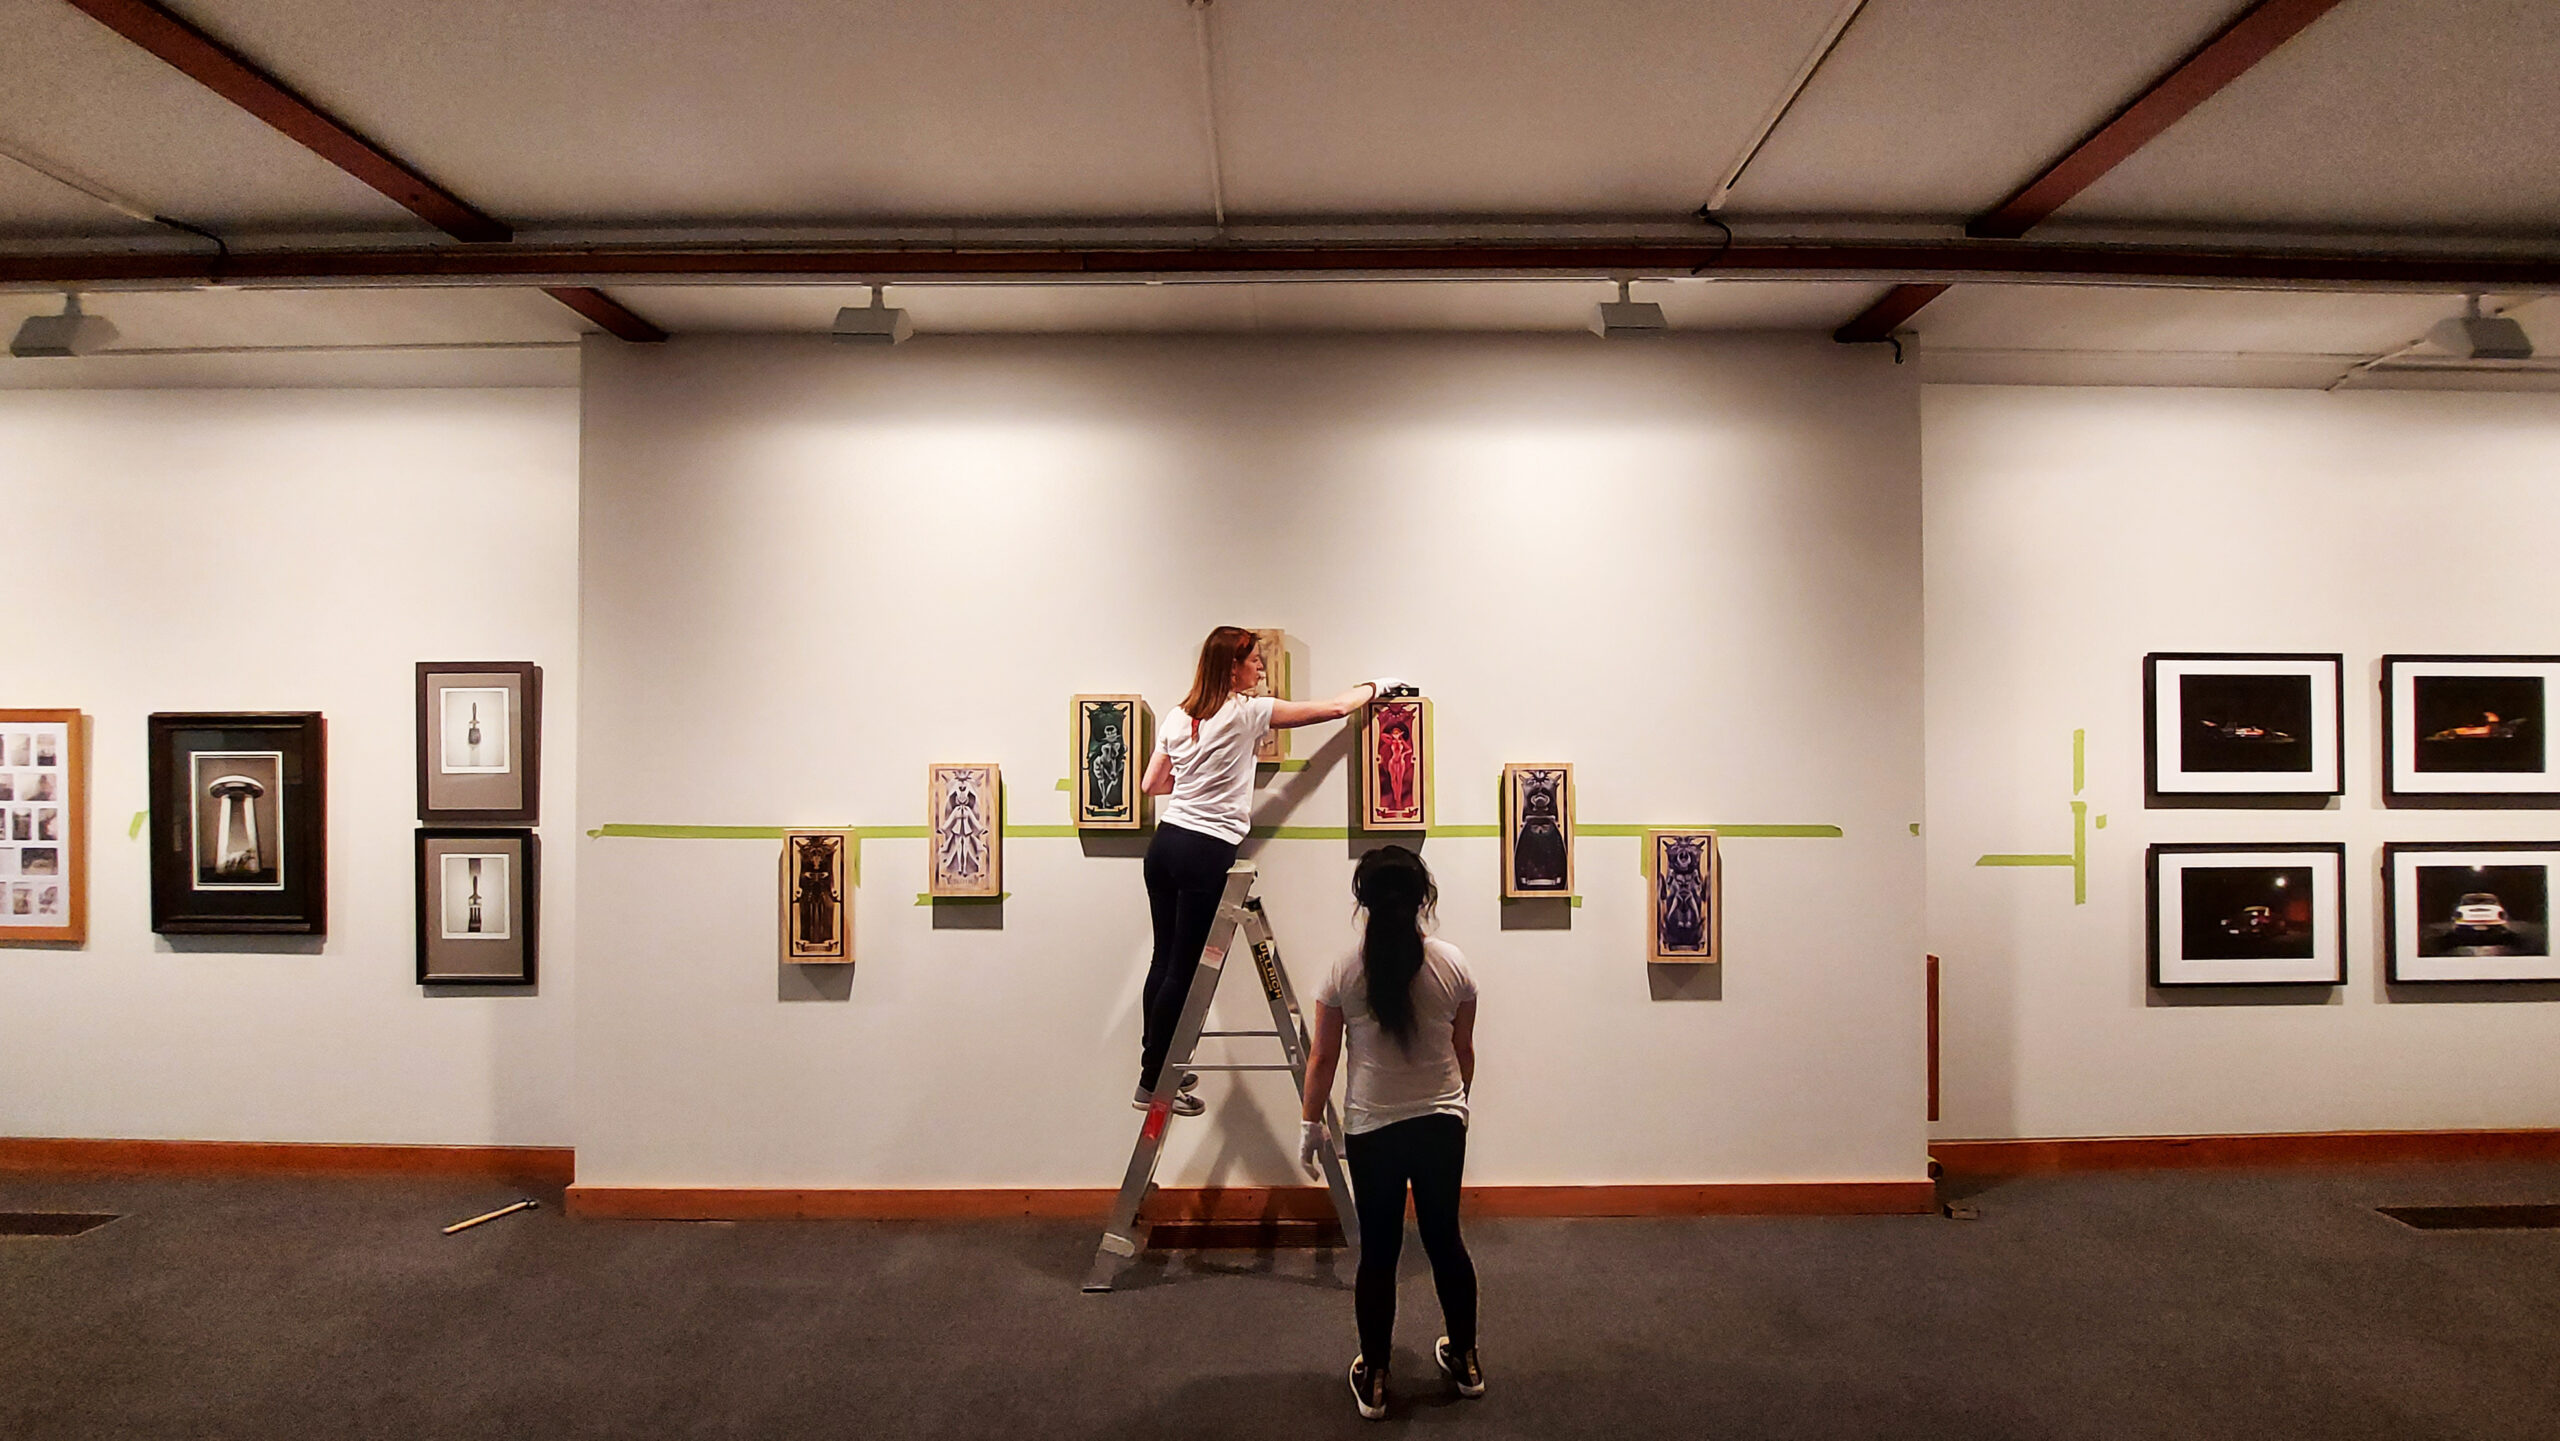 Technicians install paintings in the Art Gallery